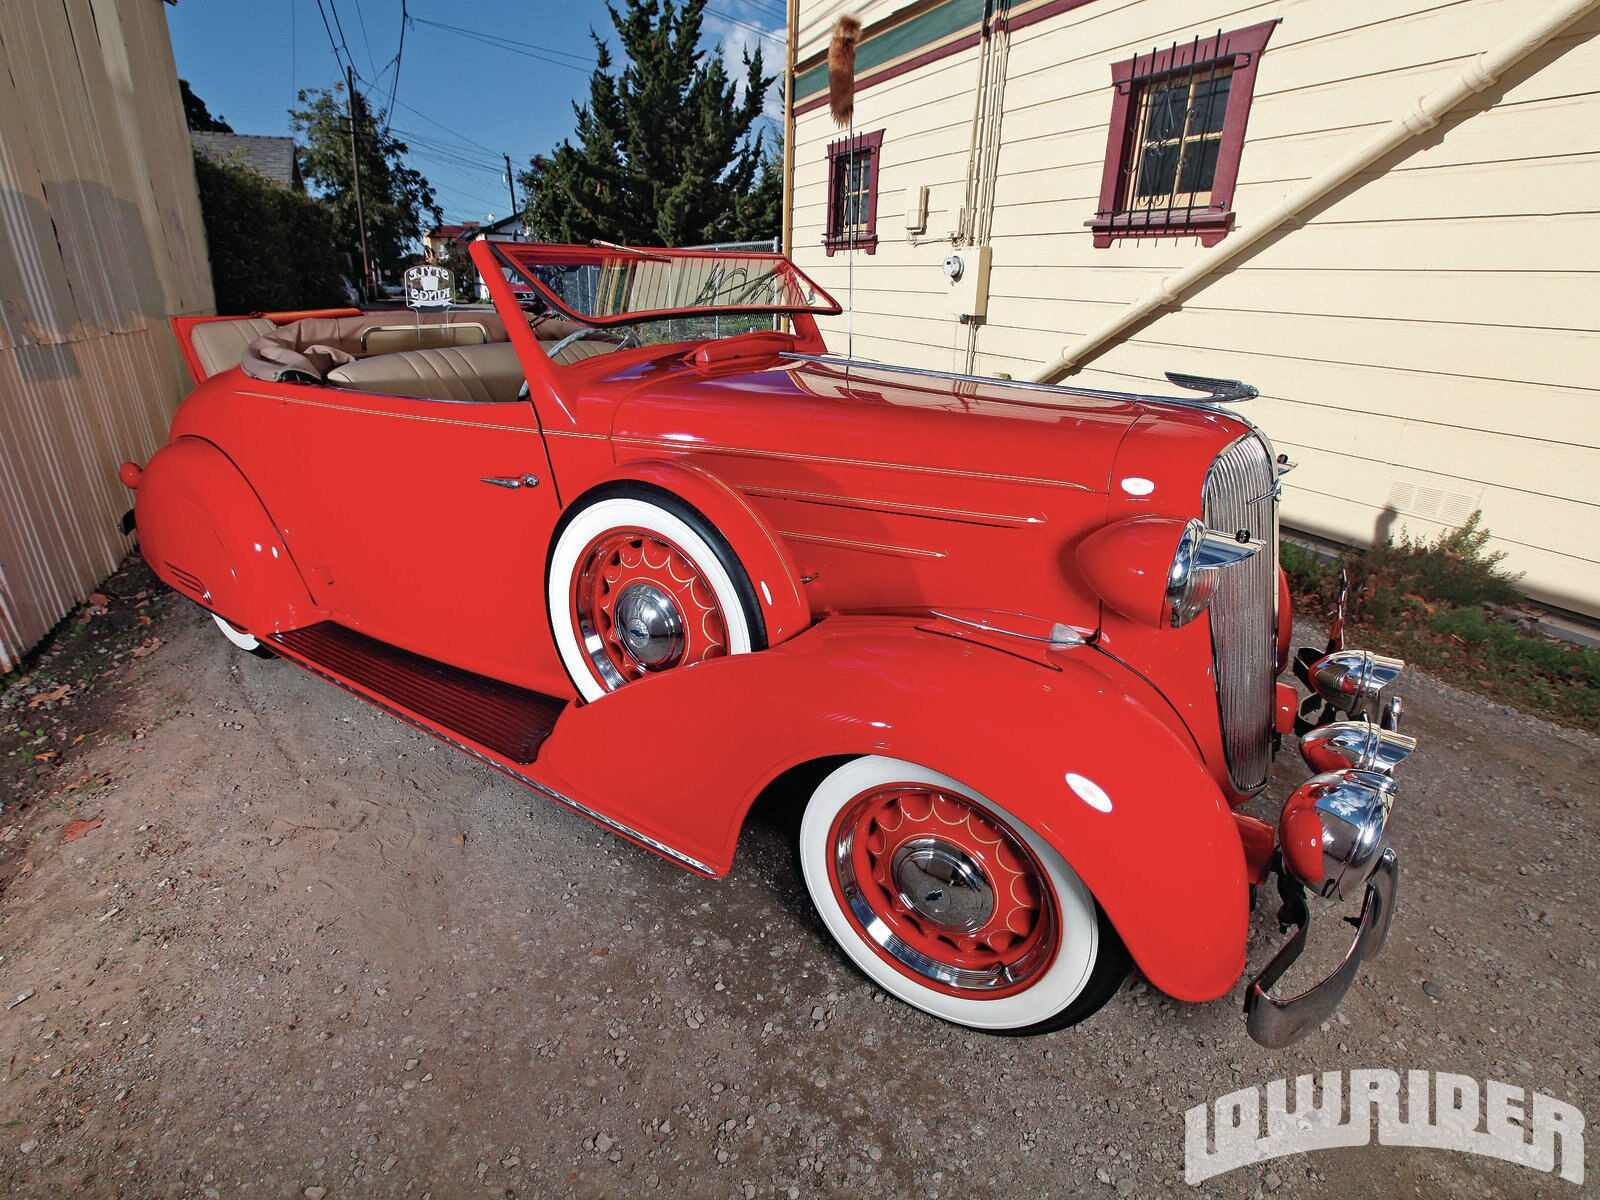 1207-lrmp-01-o-1936-chevrolet-sport-roadster-passenger-side-view1